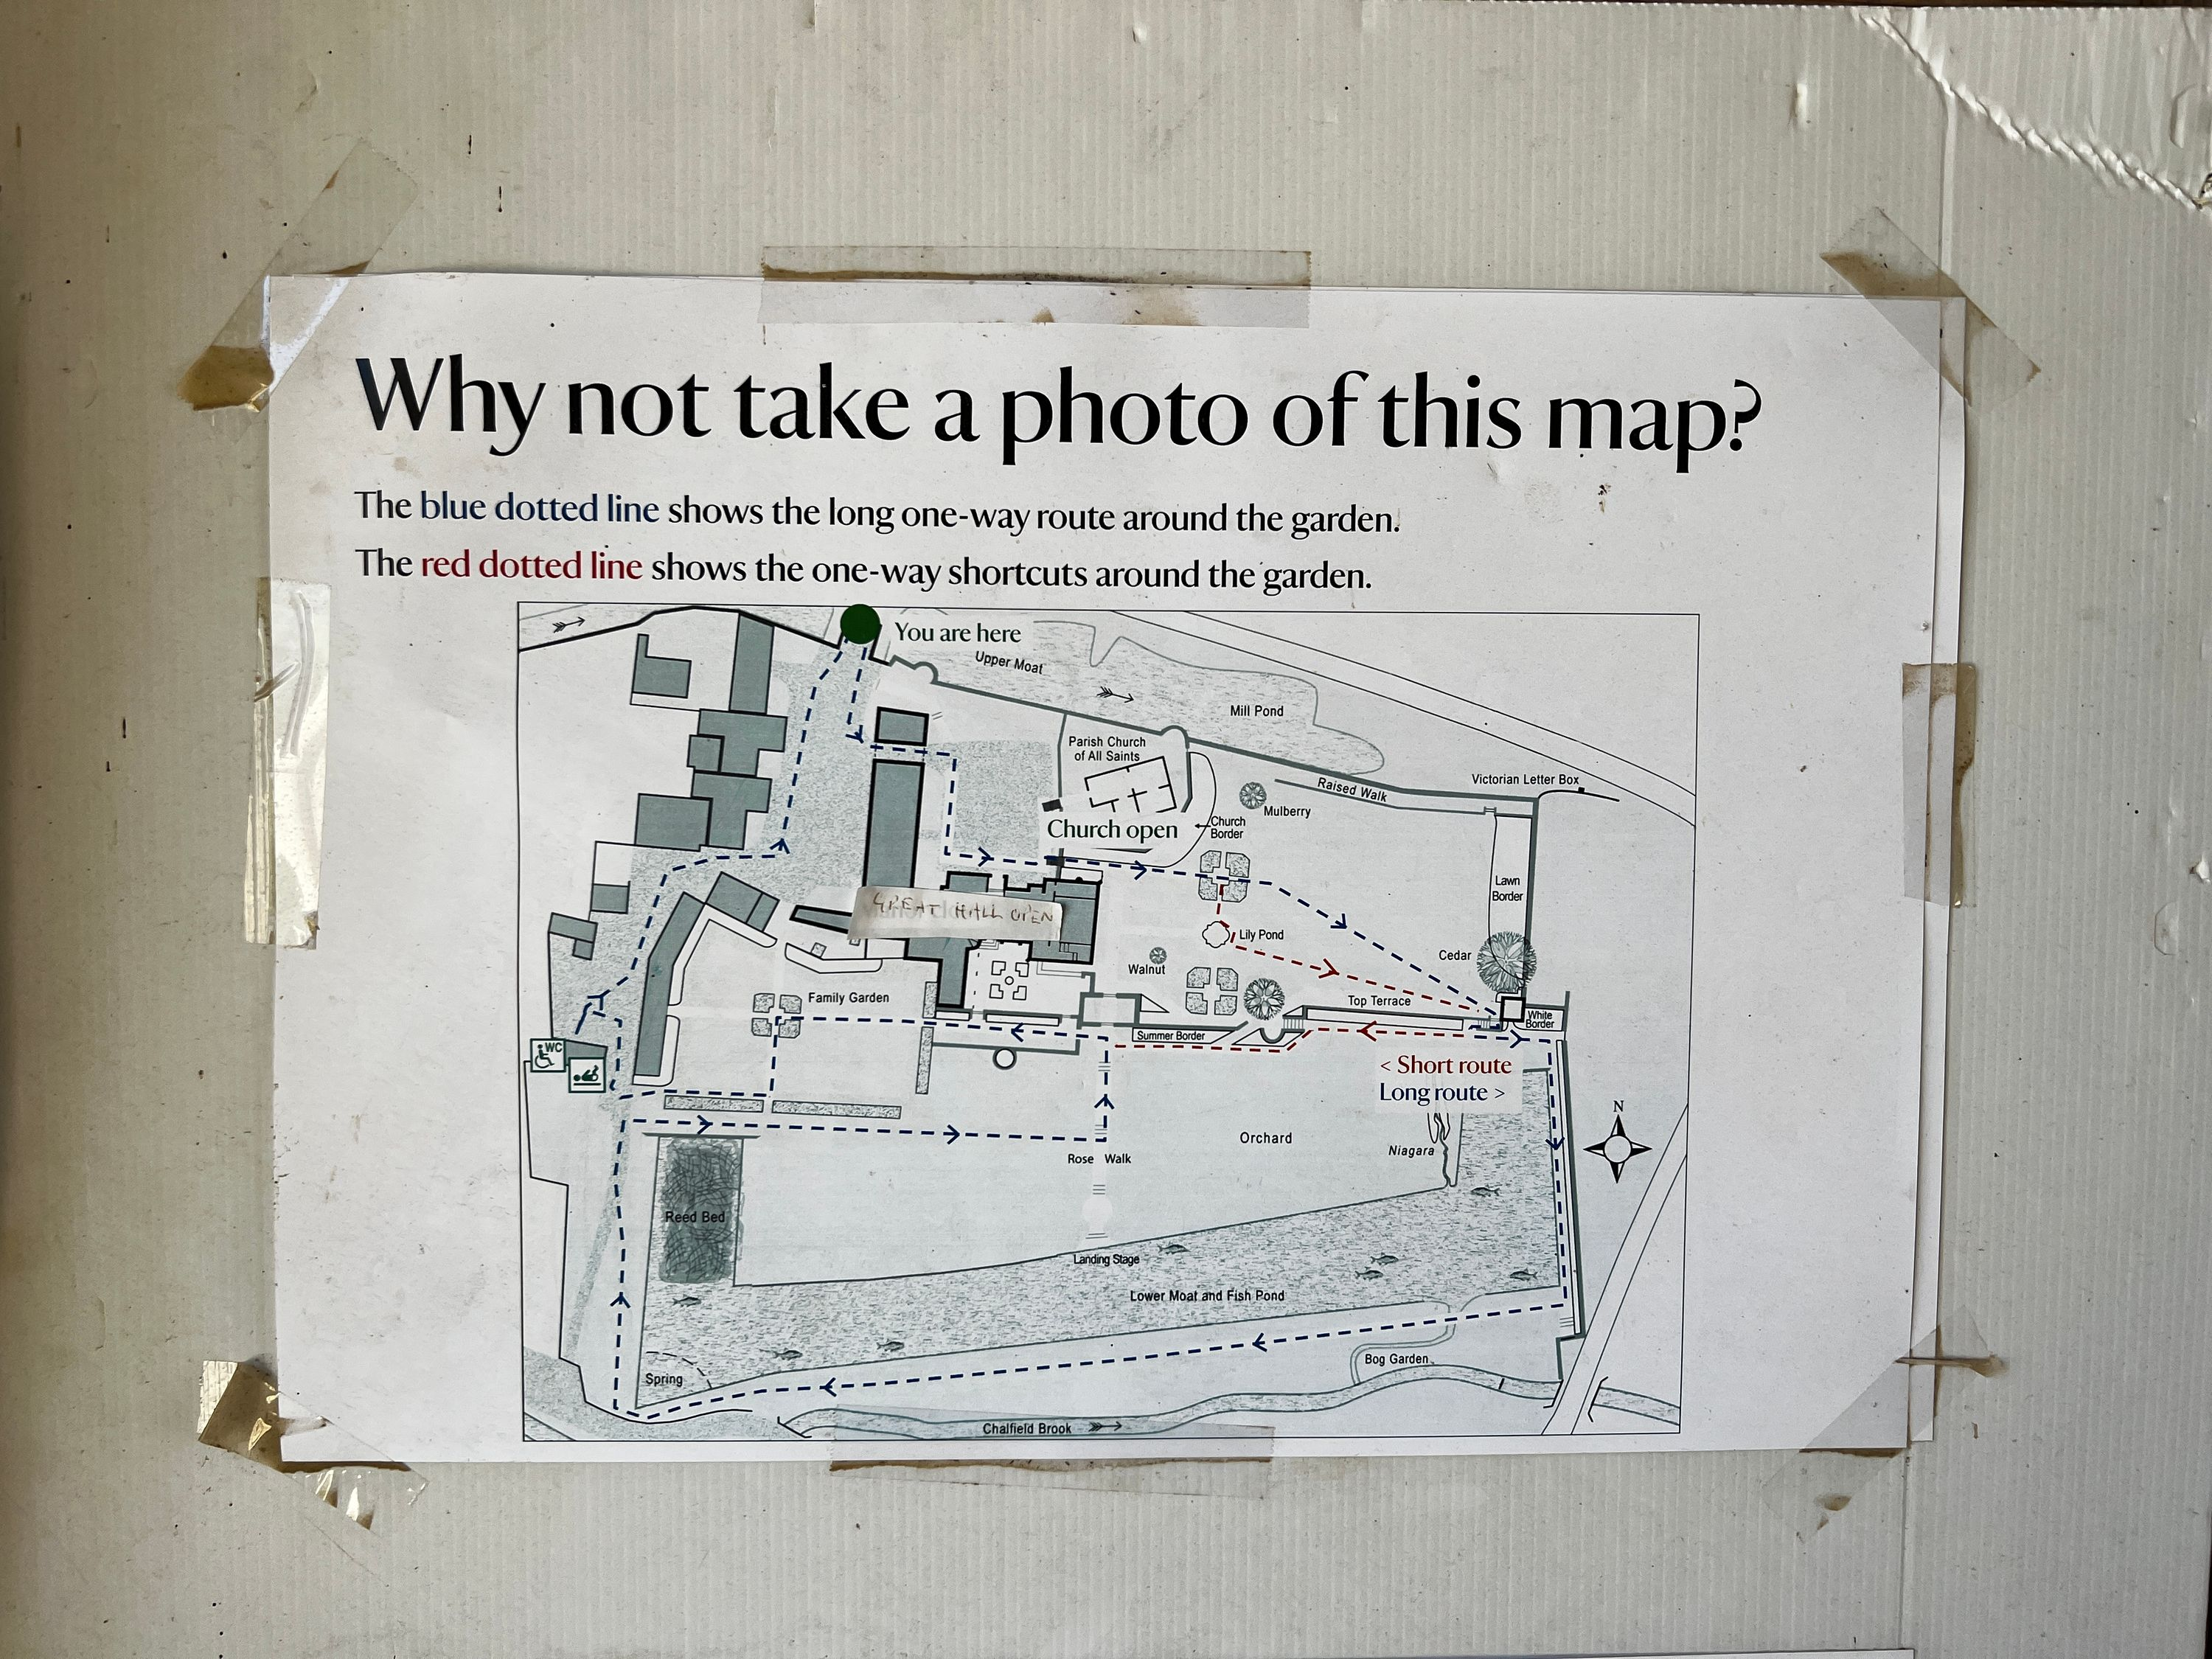 Why not take a photo of this map?